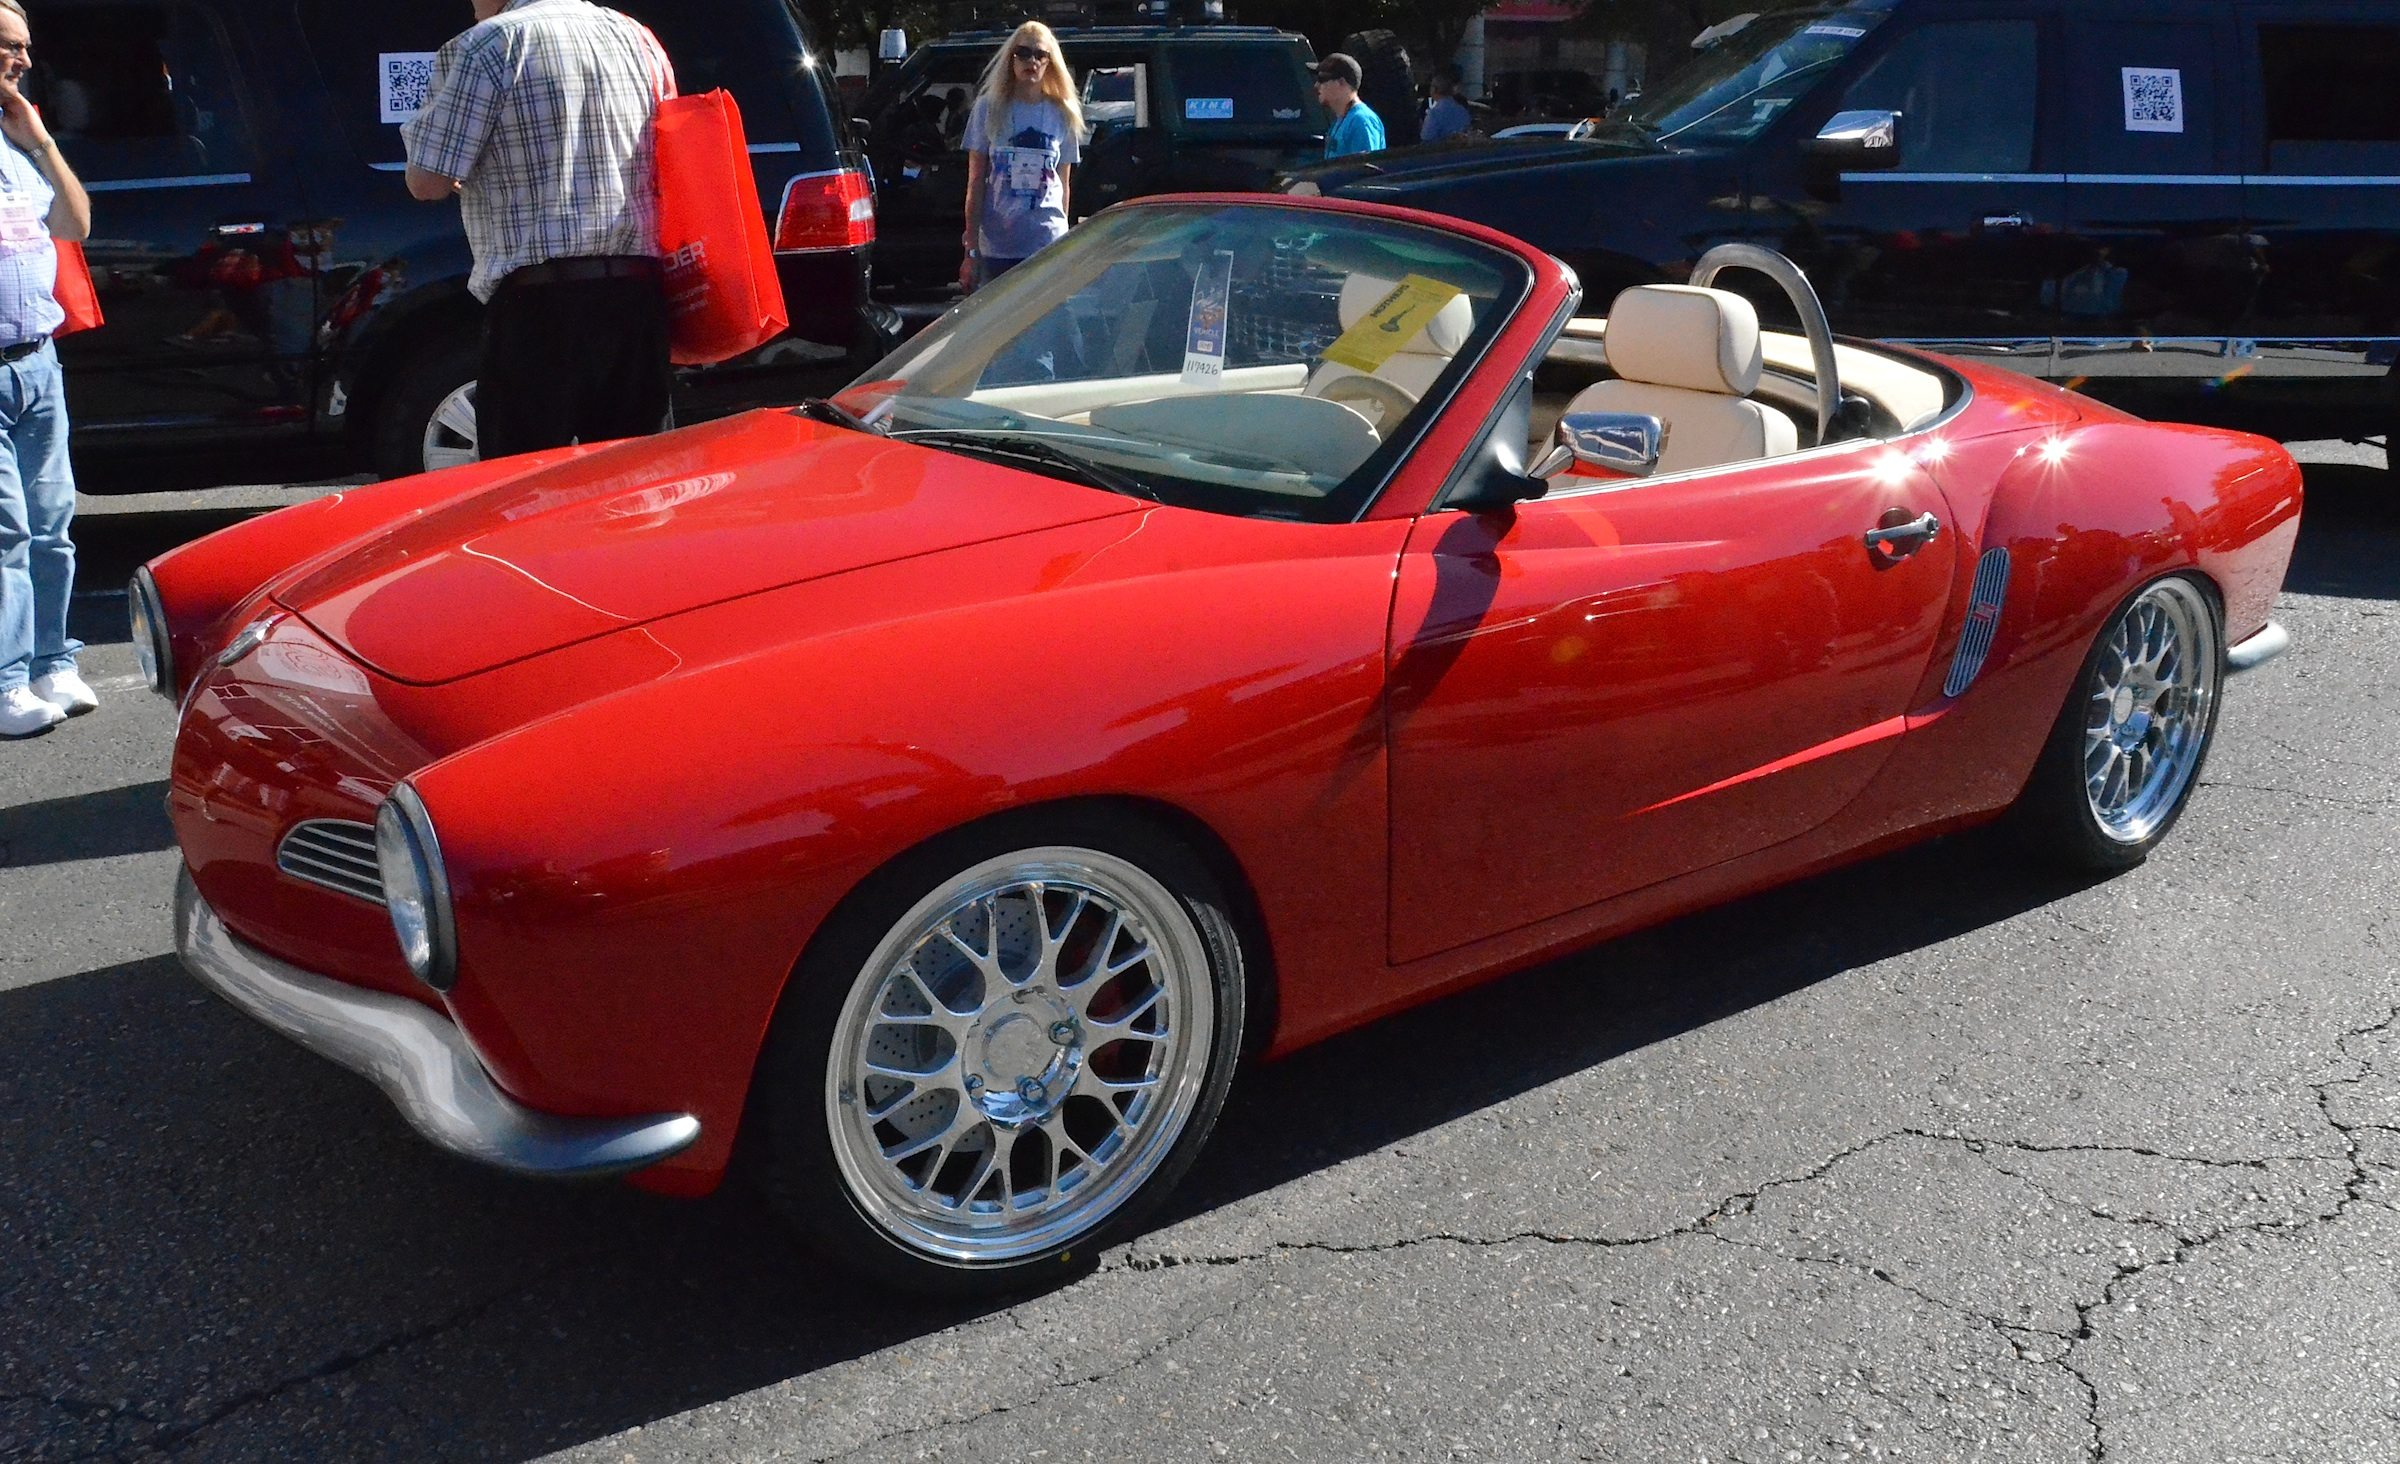 Porsche Customizer Puts a 1972 Karmann Ghia Body on a Boxster S